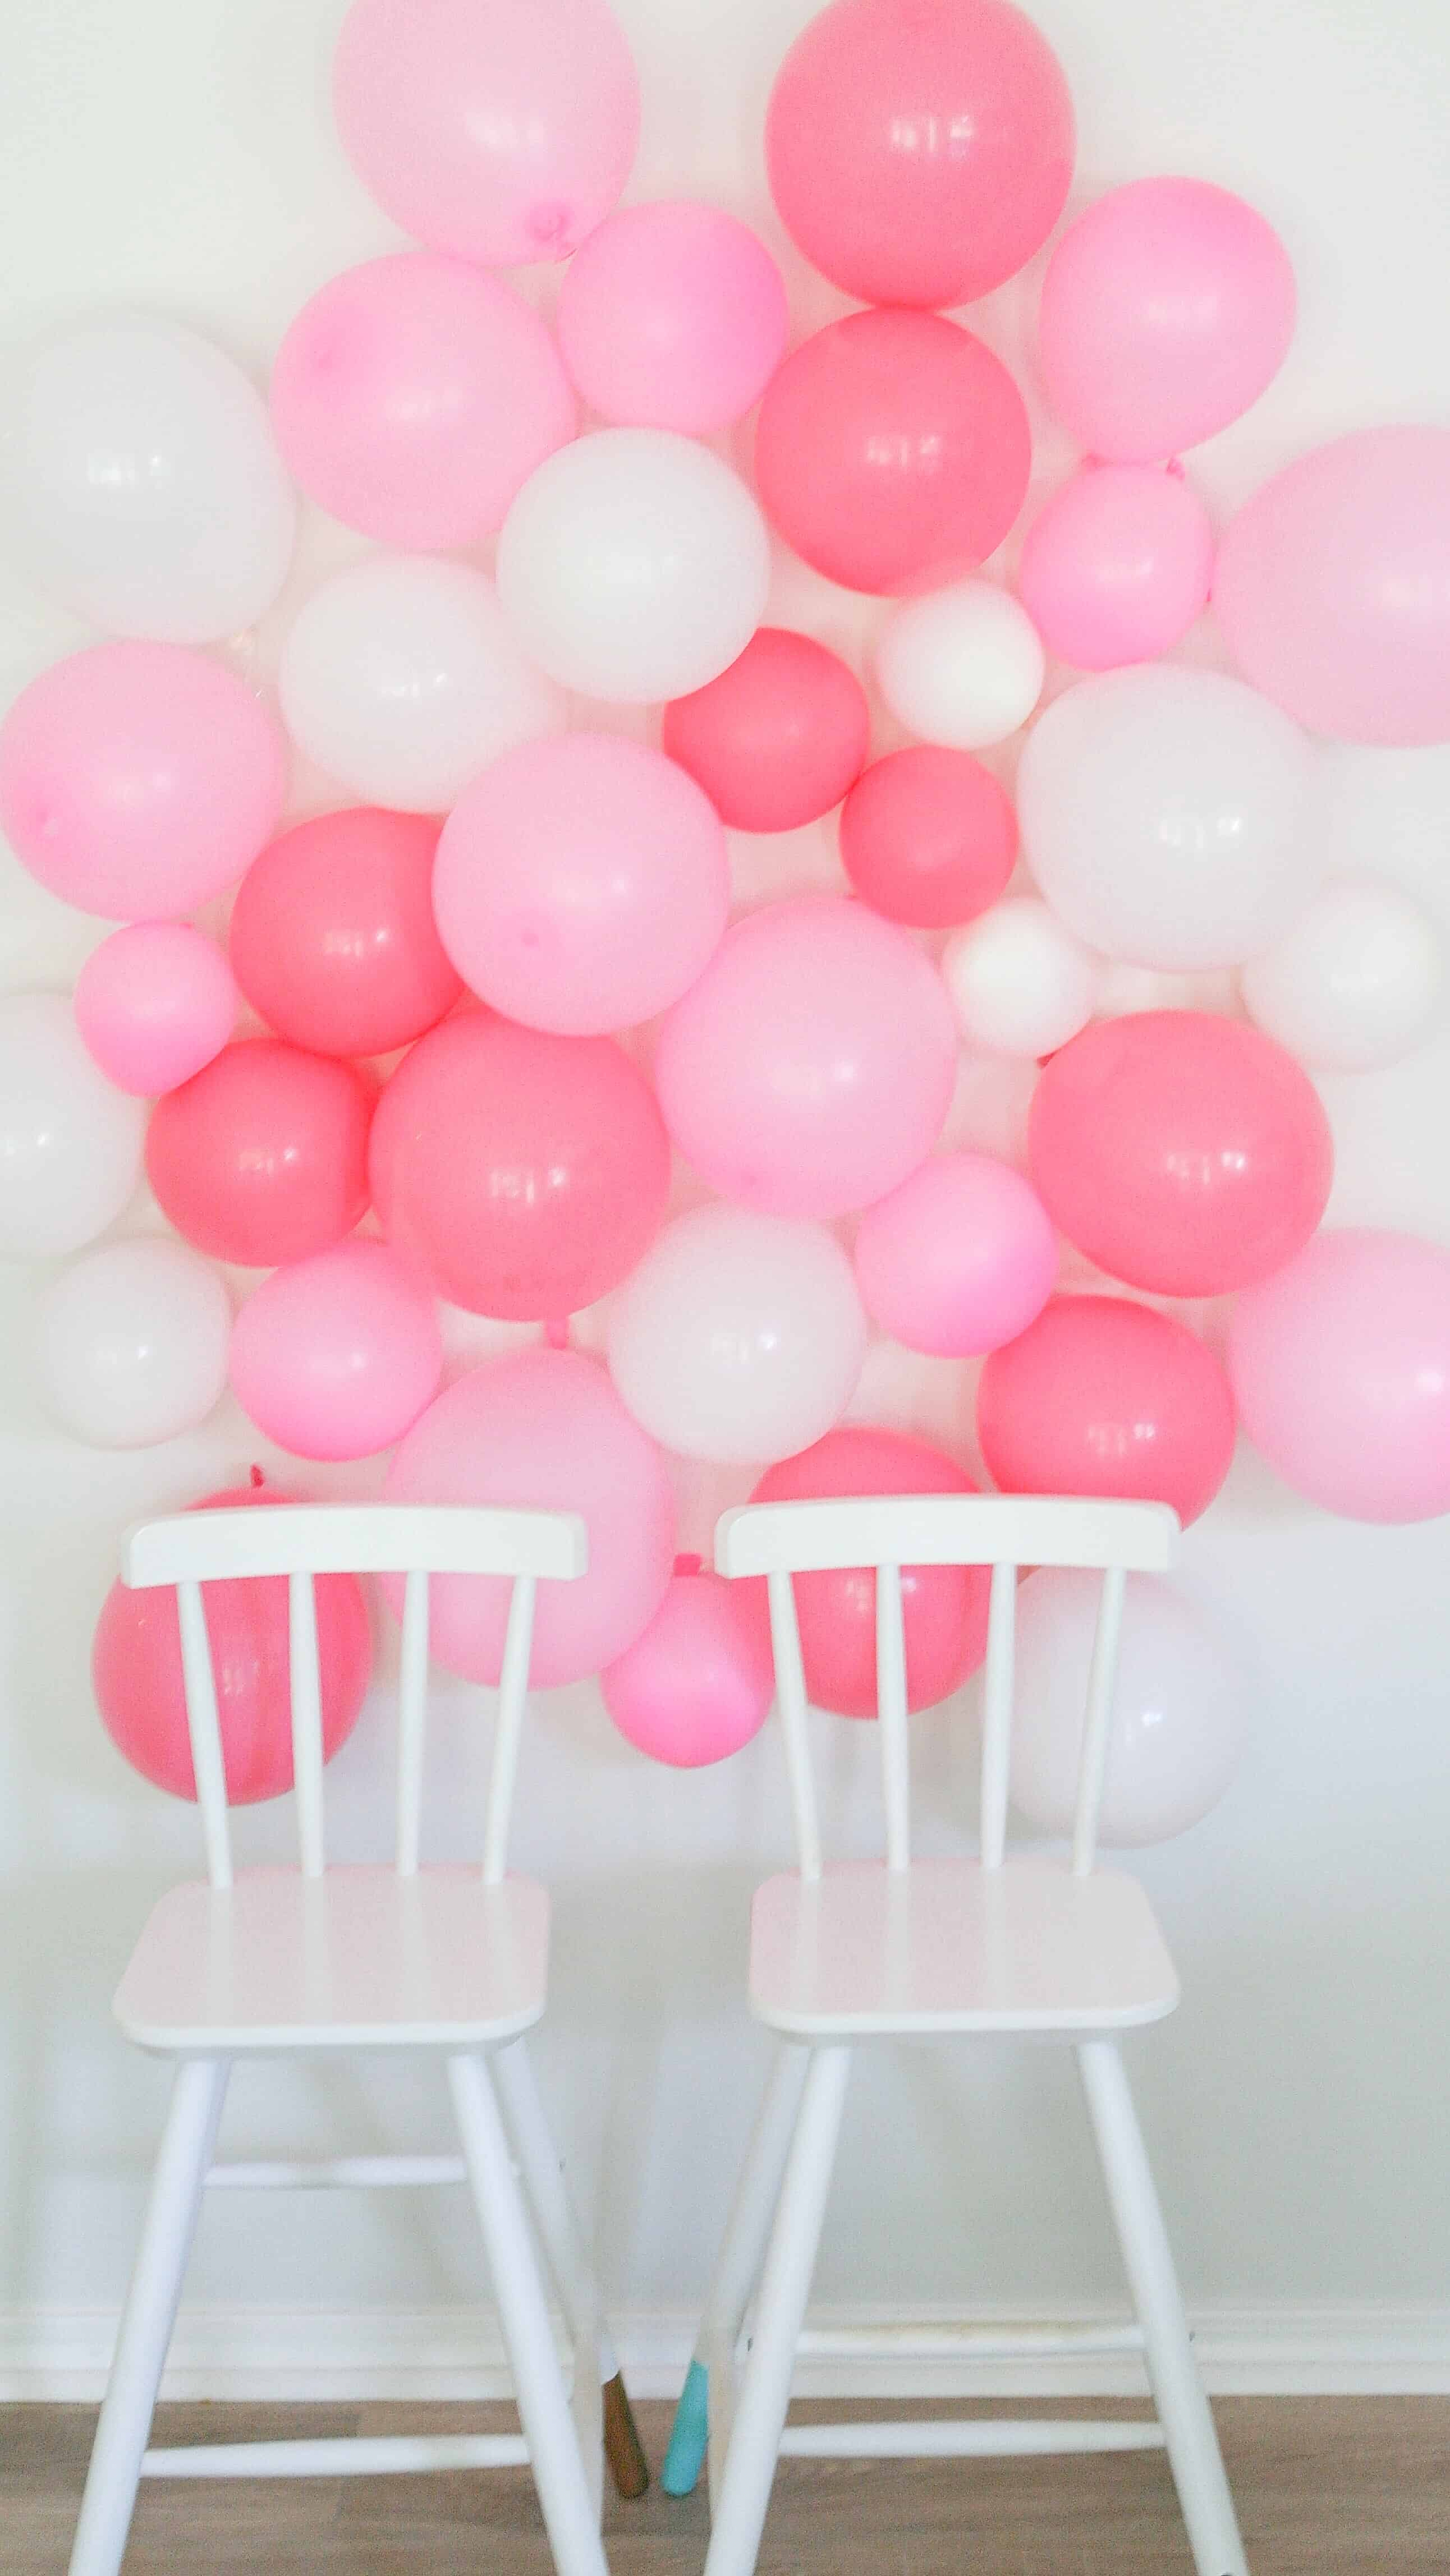 white chairs in front of pink and white DIY balloon wall